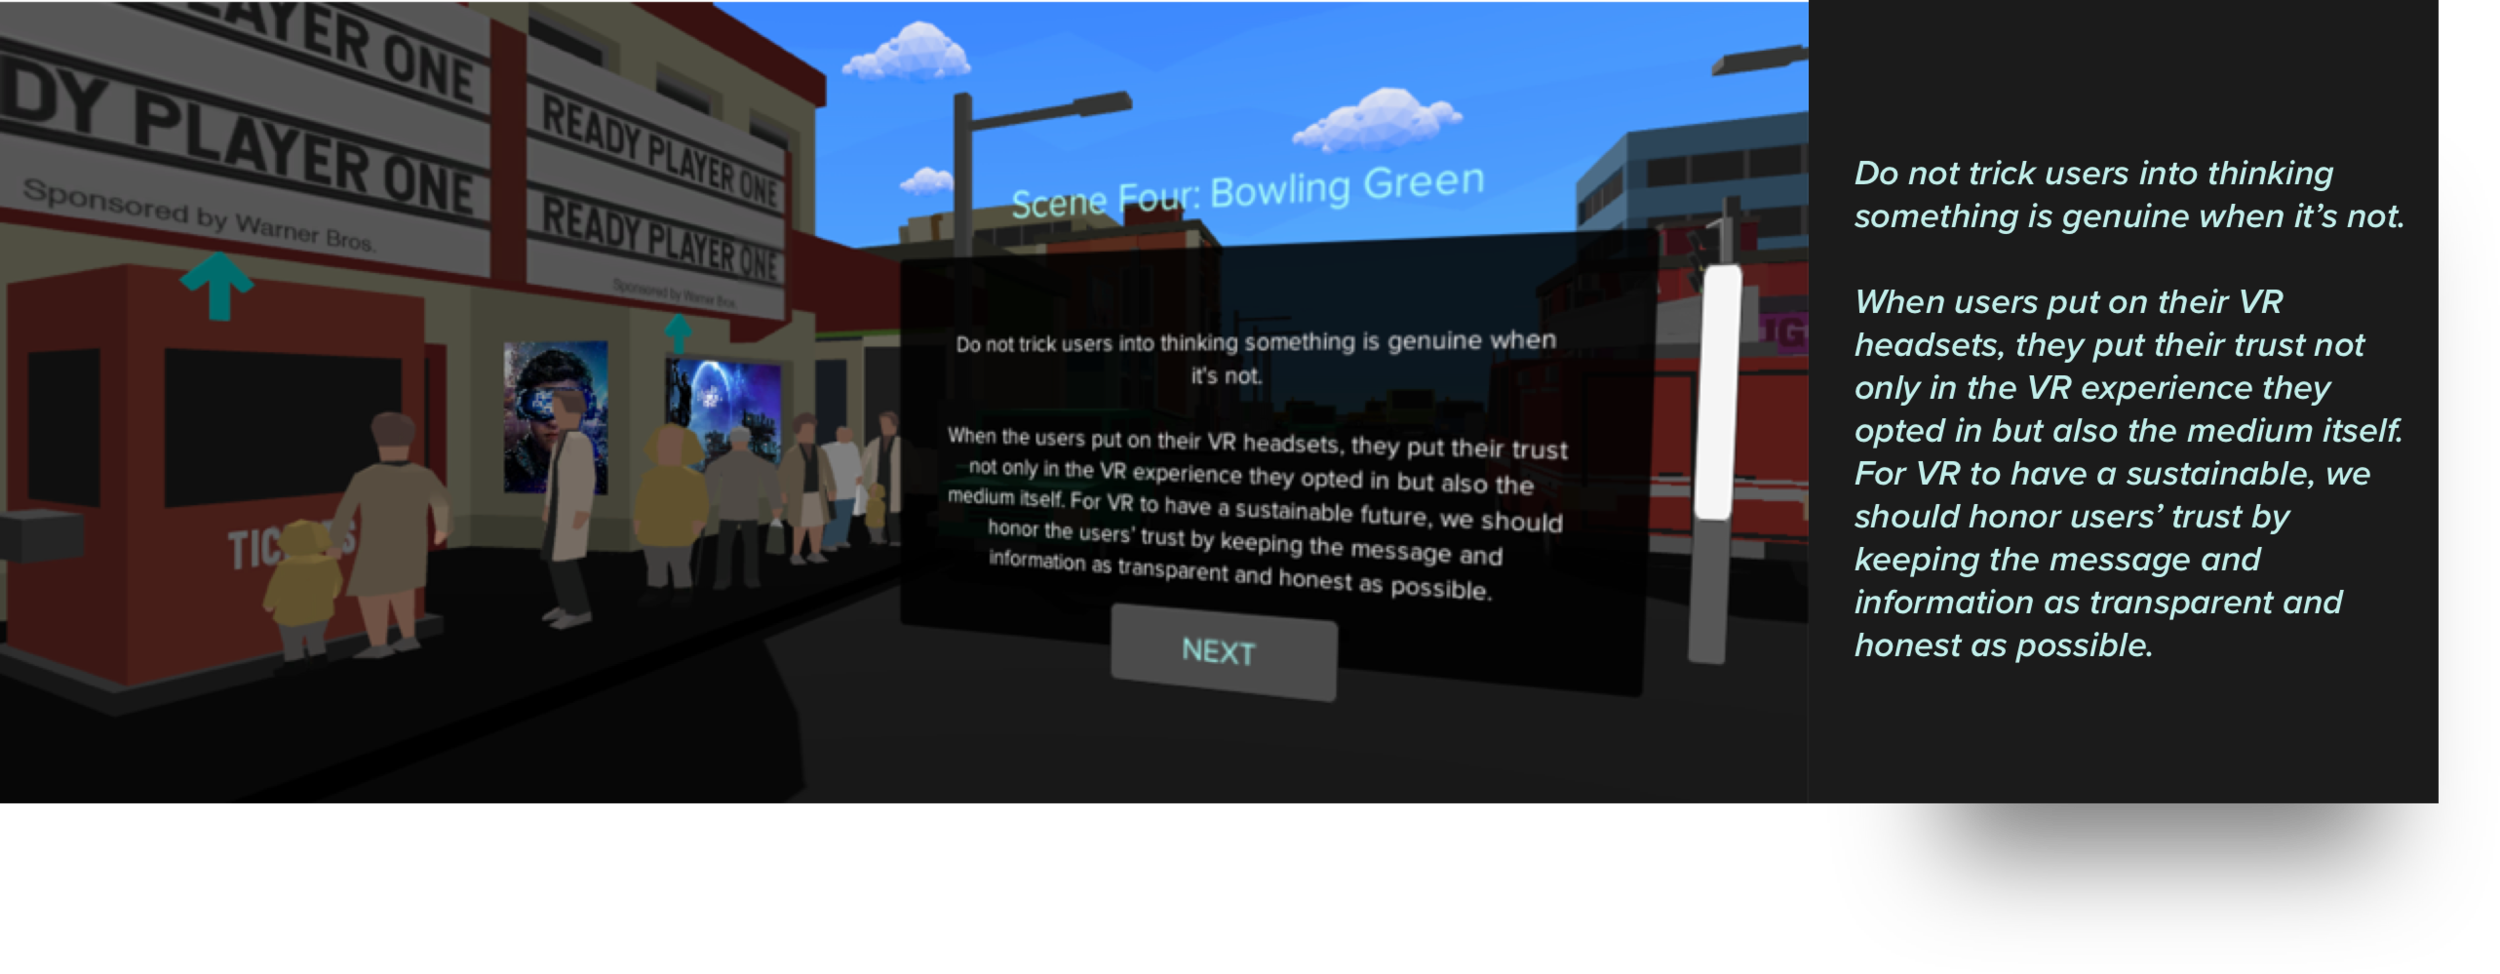 Bowling Green Second Scene Card #1.png